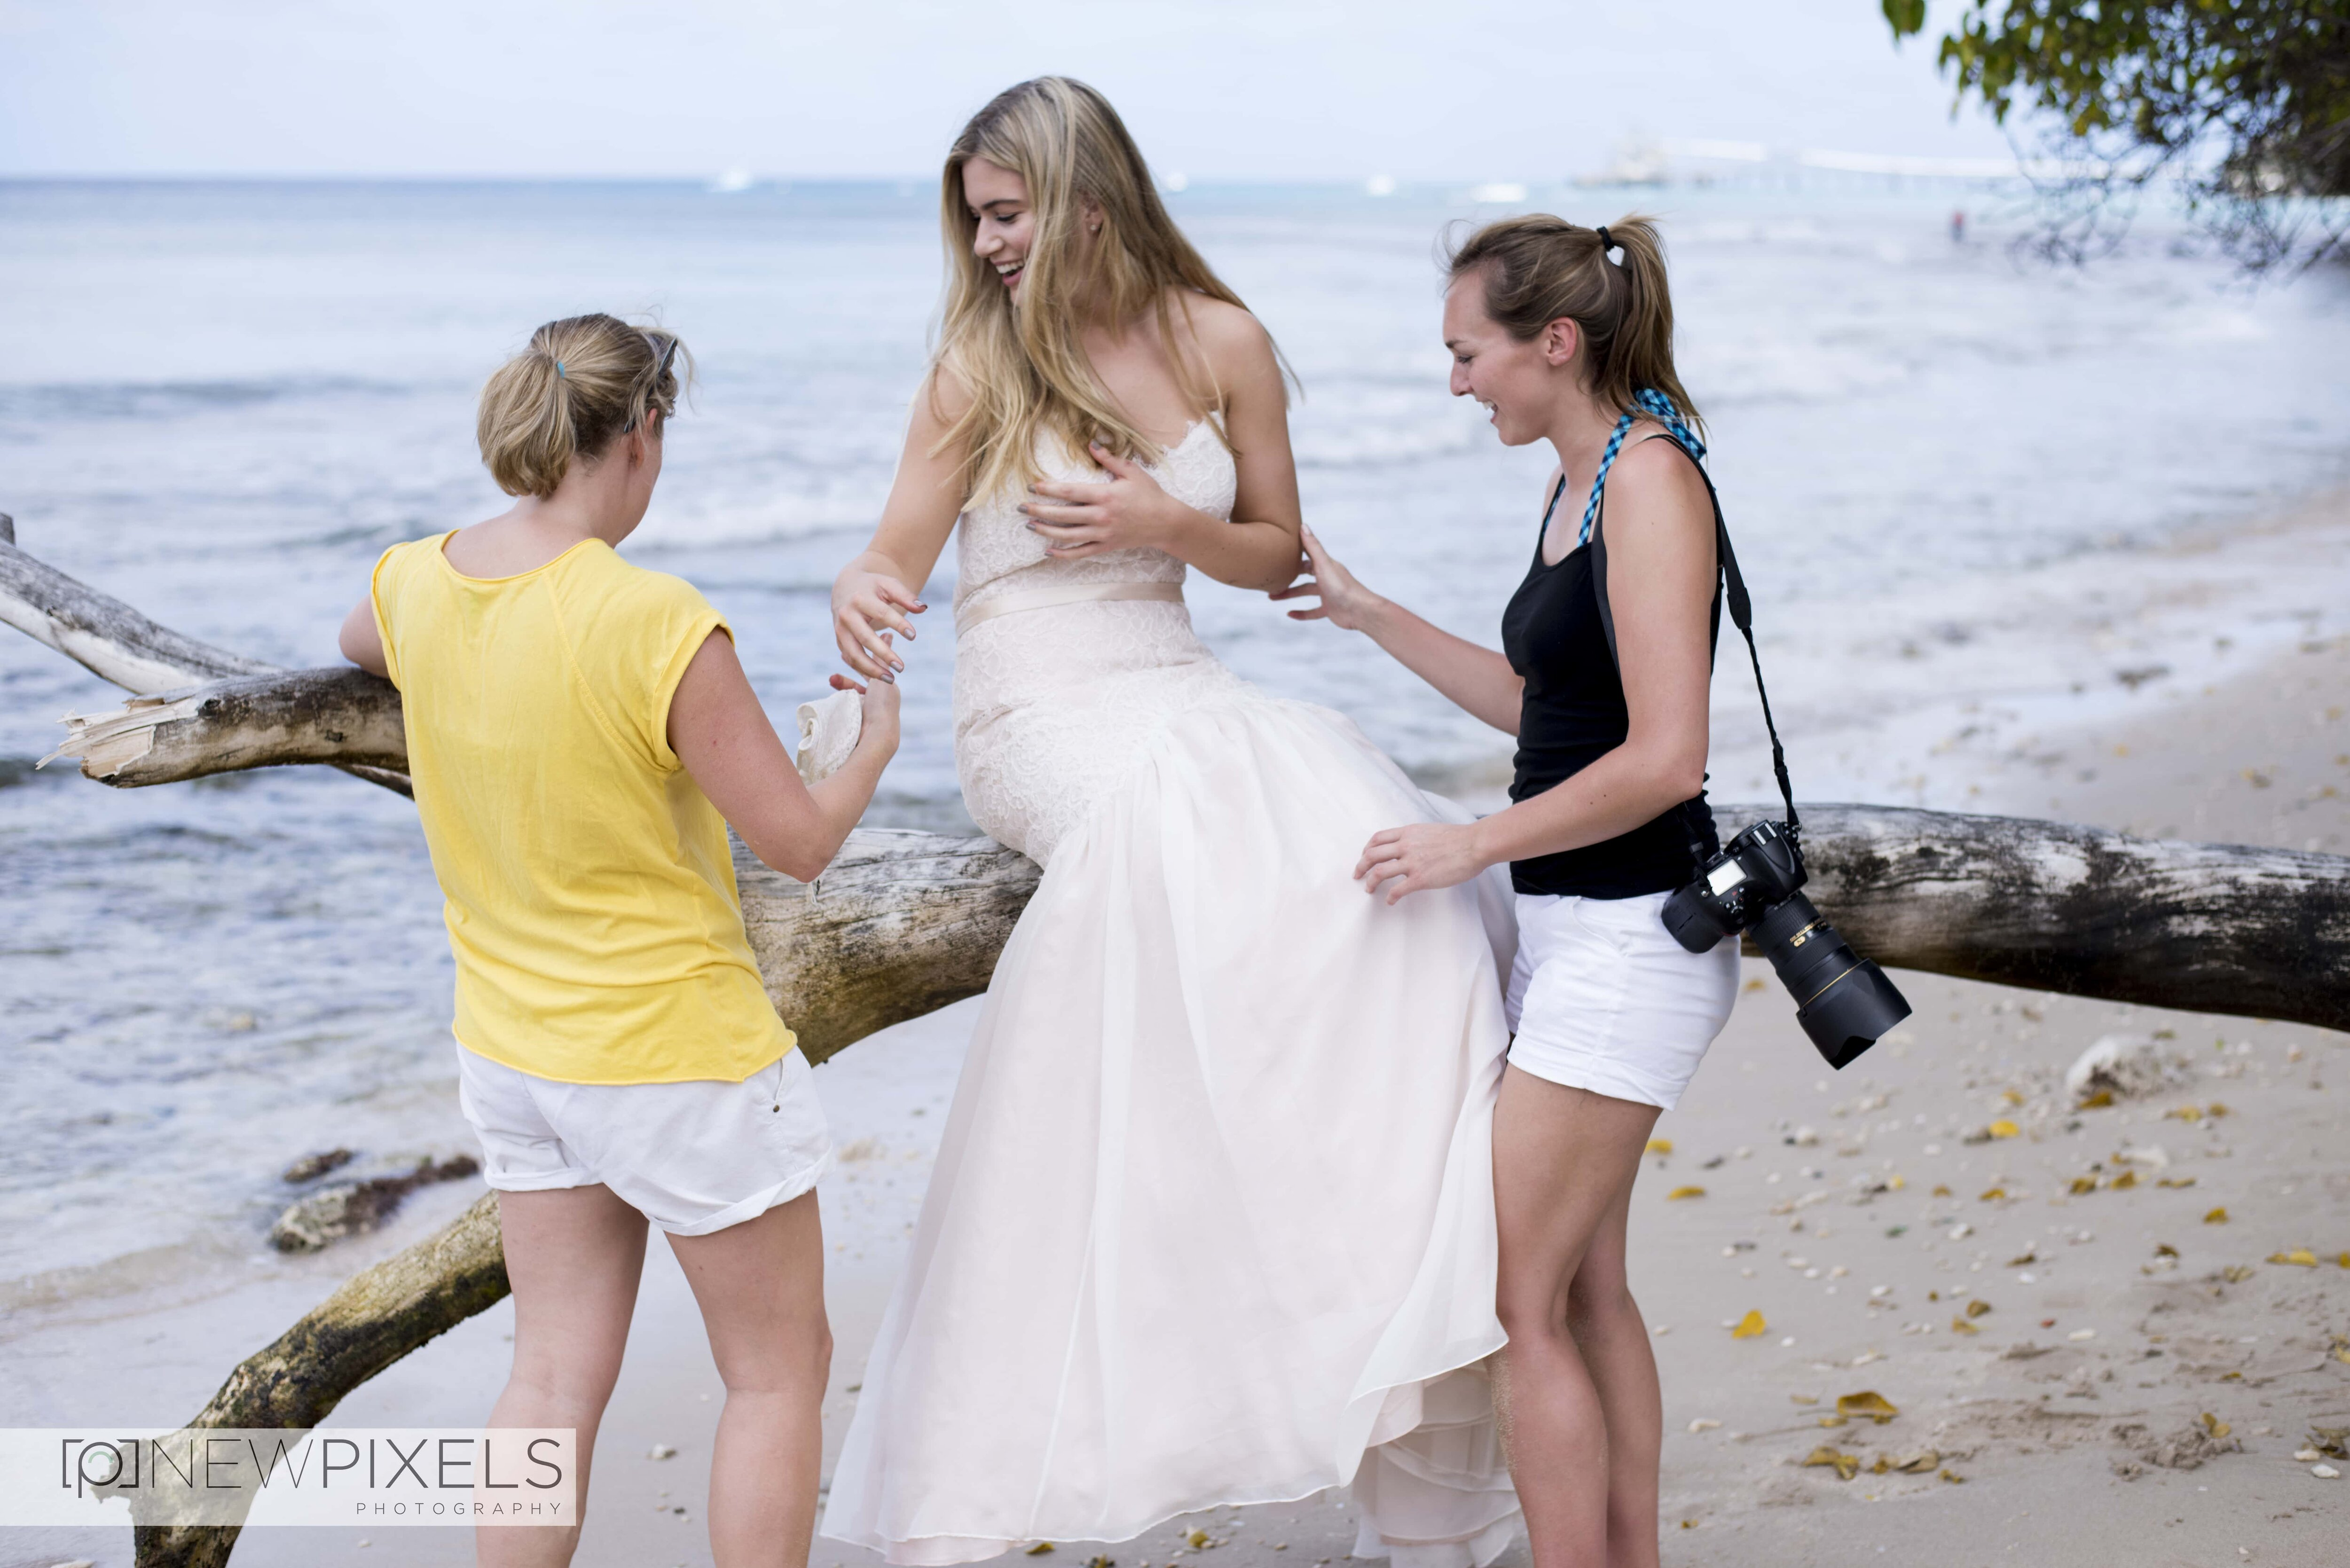 Behind_the_Scenes_Fashion_Shoot13